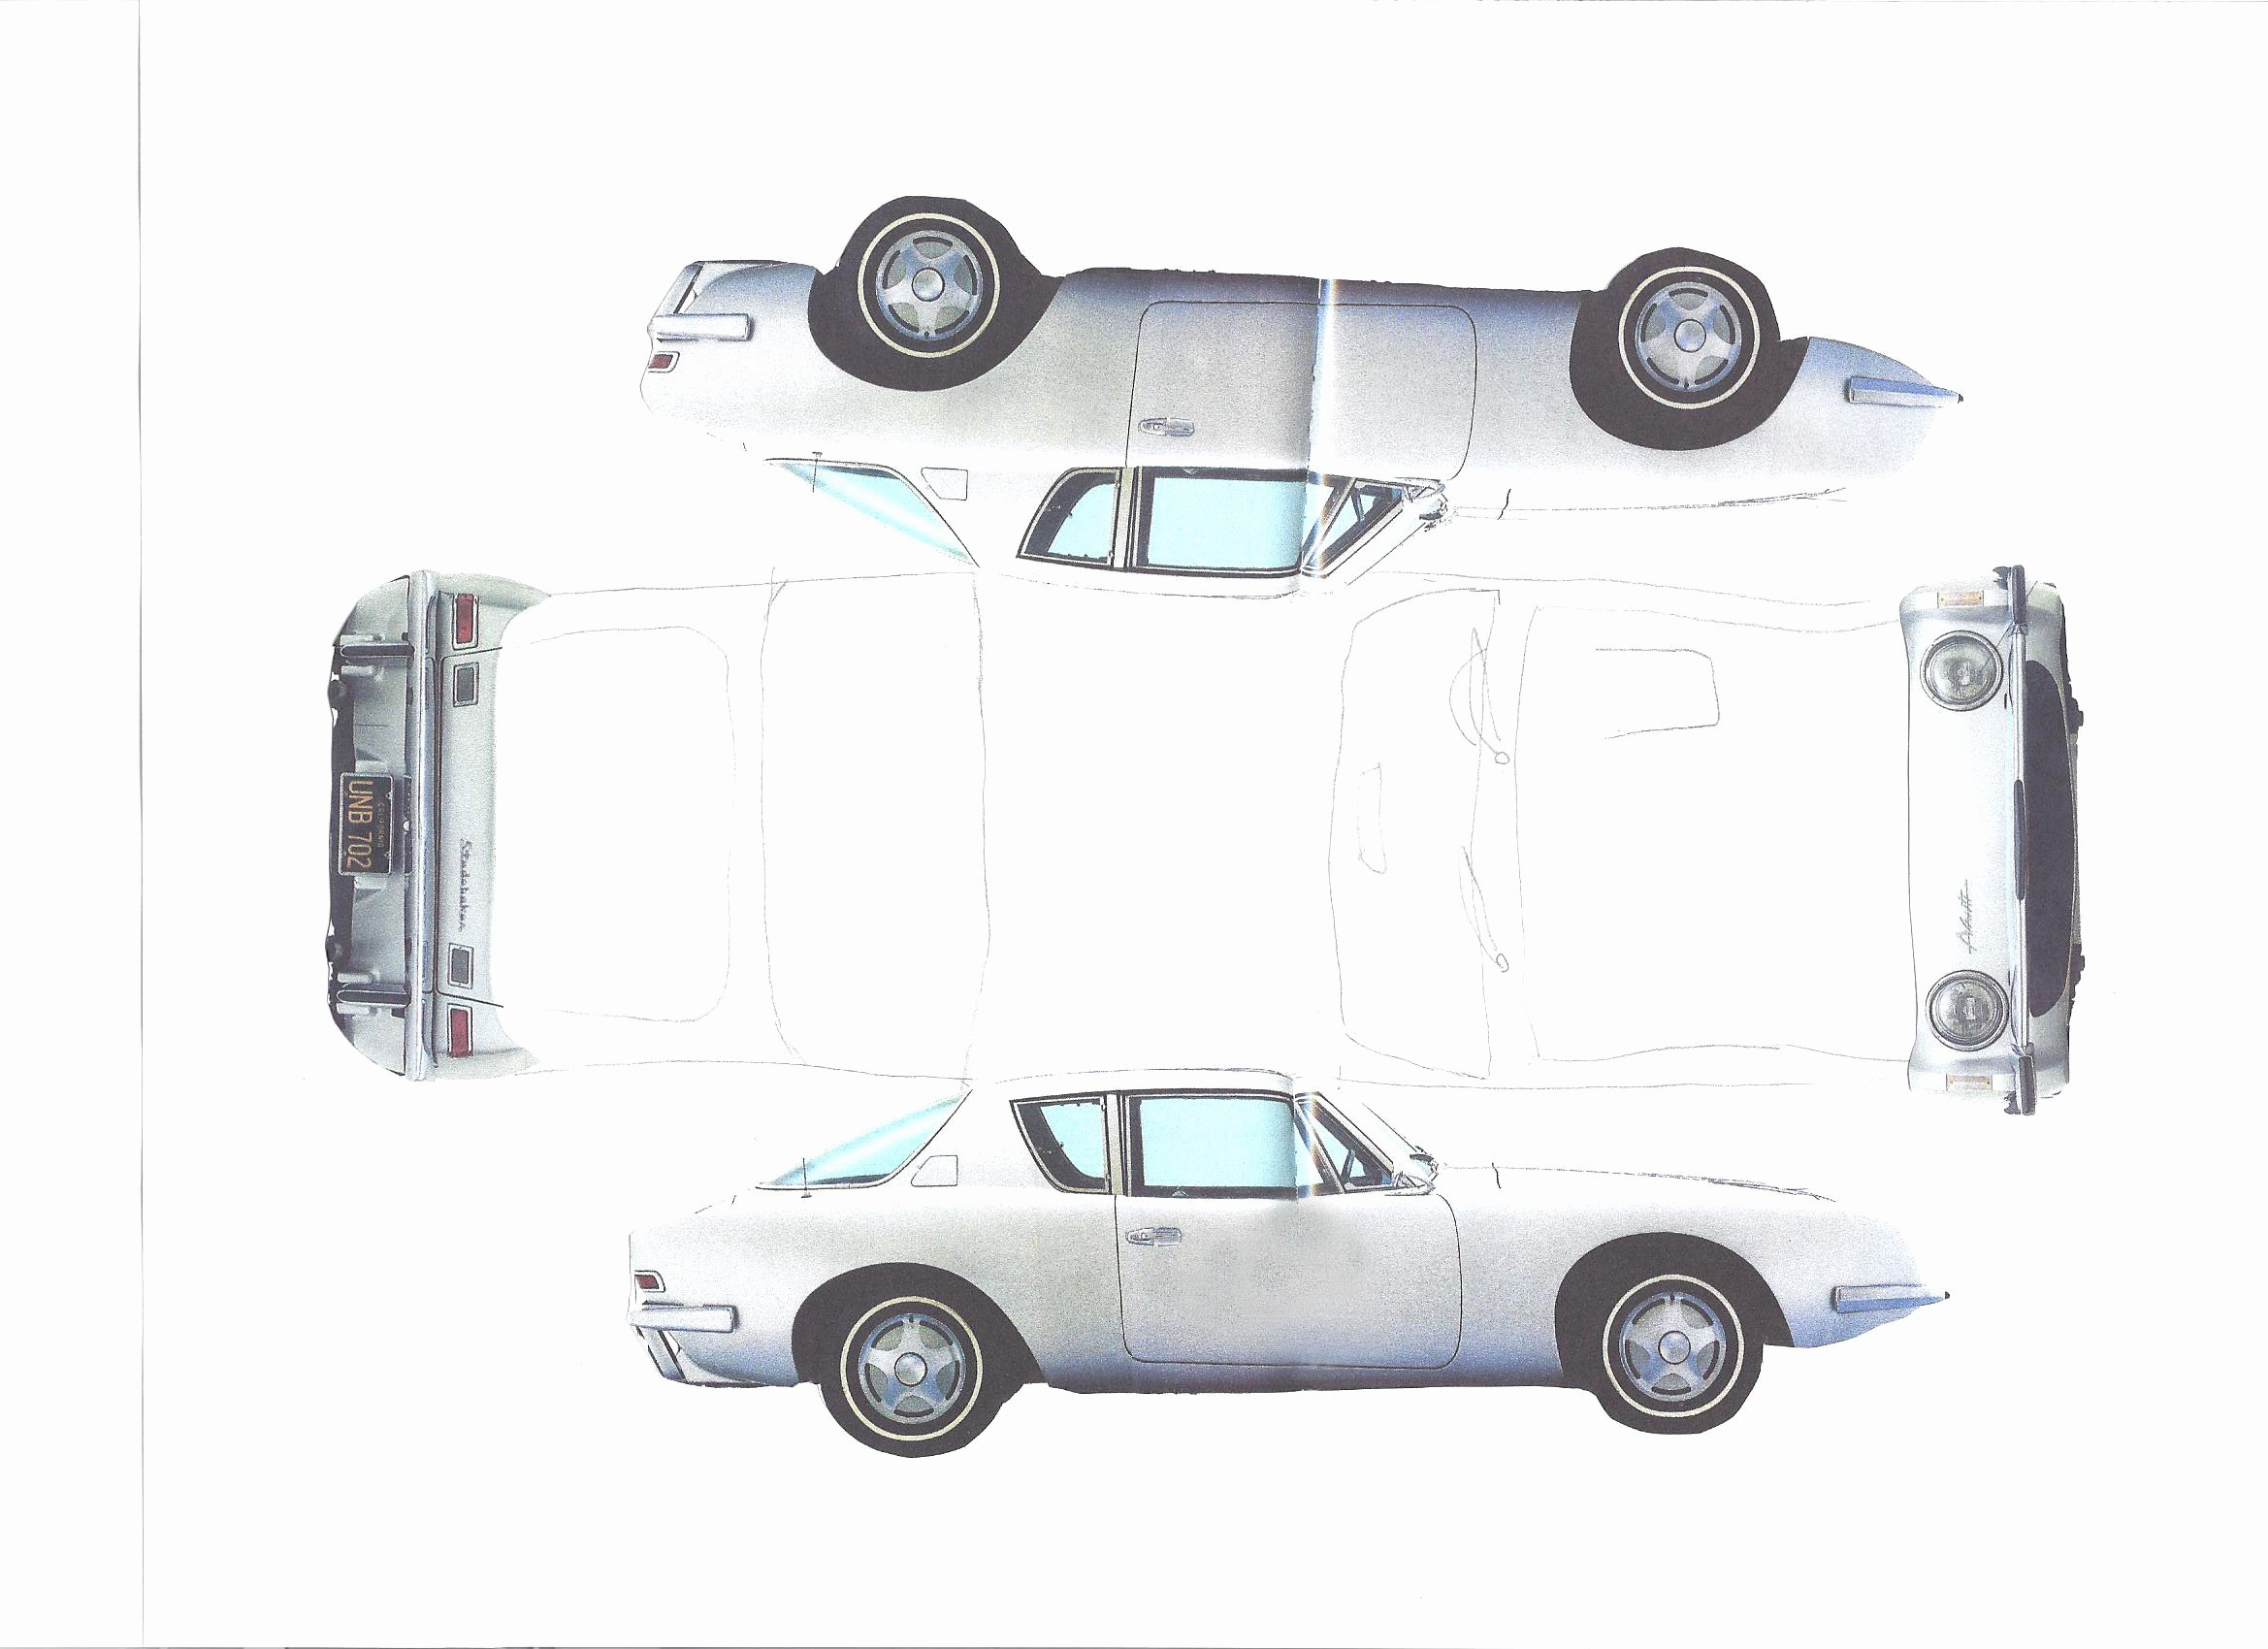 Paper Cut Out Cars Elegant Digital World and Image Studio Blog Blog Archive